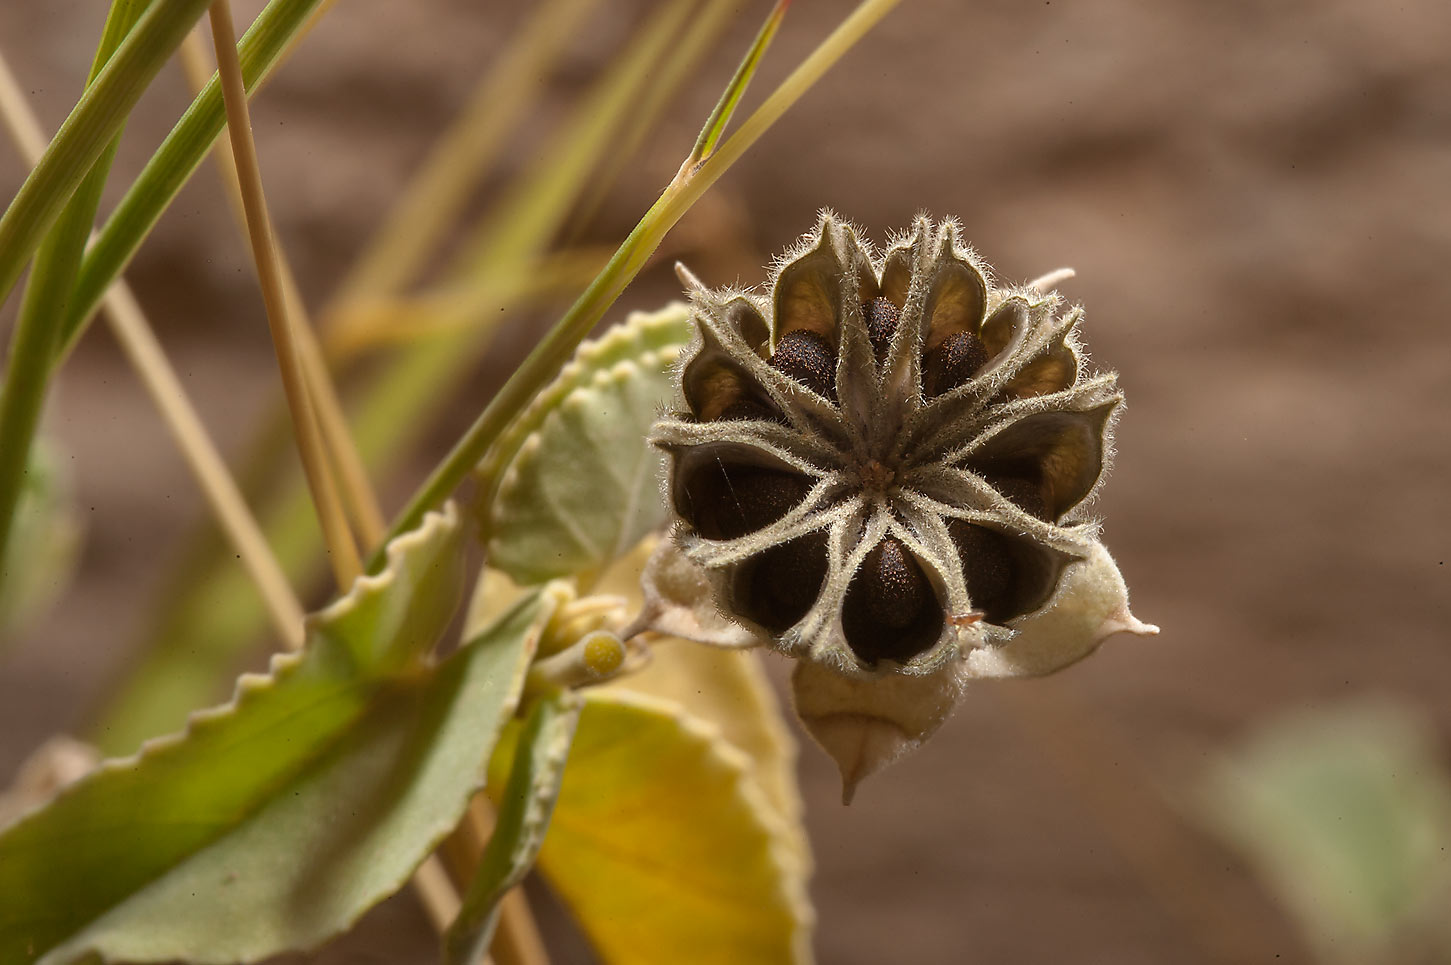 Seeds of Texas Indian-mallow (Abutilon fruticosum...of Al Magdah farms in northern Qatar